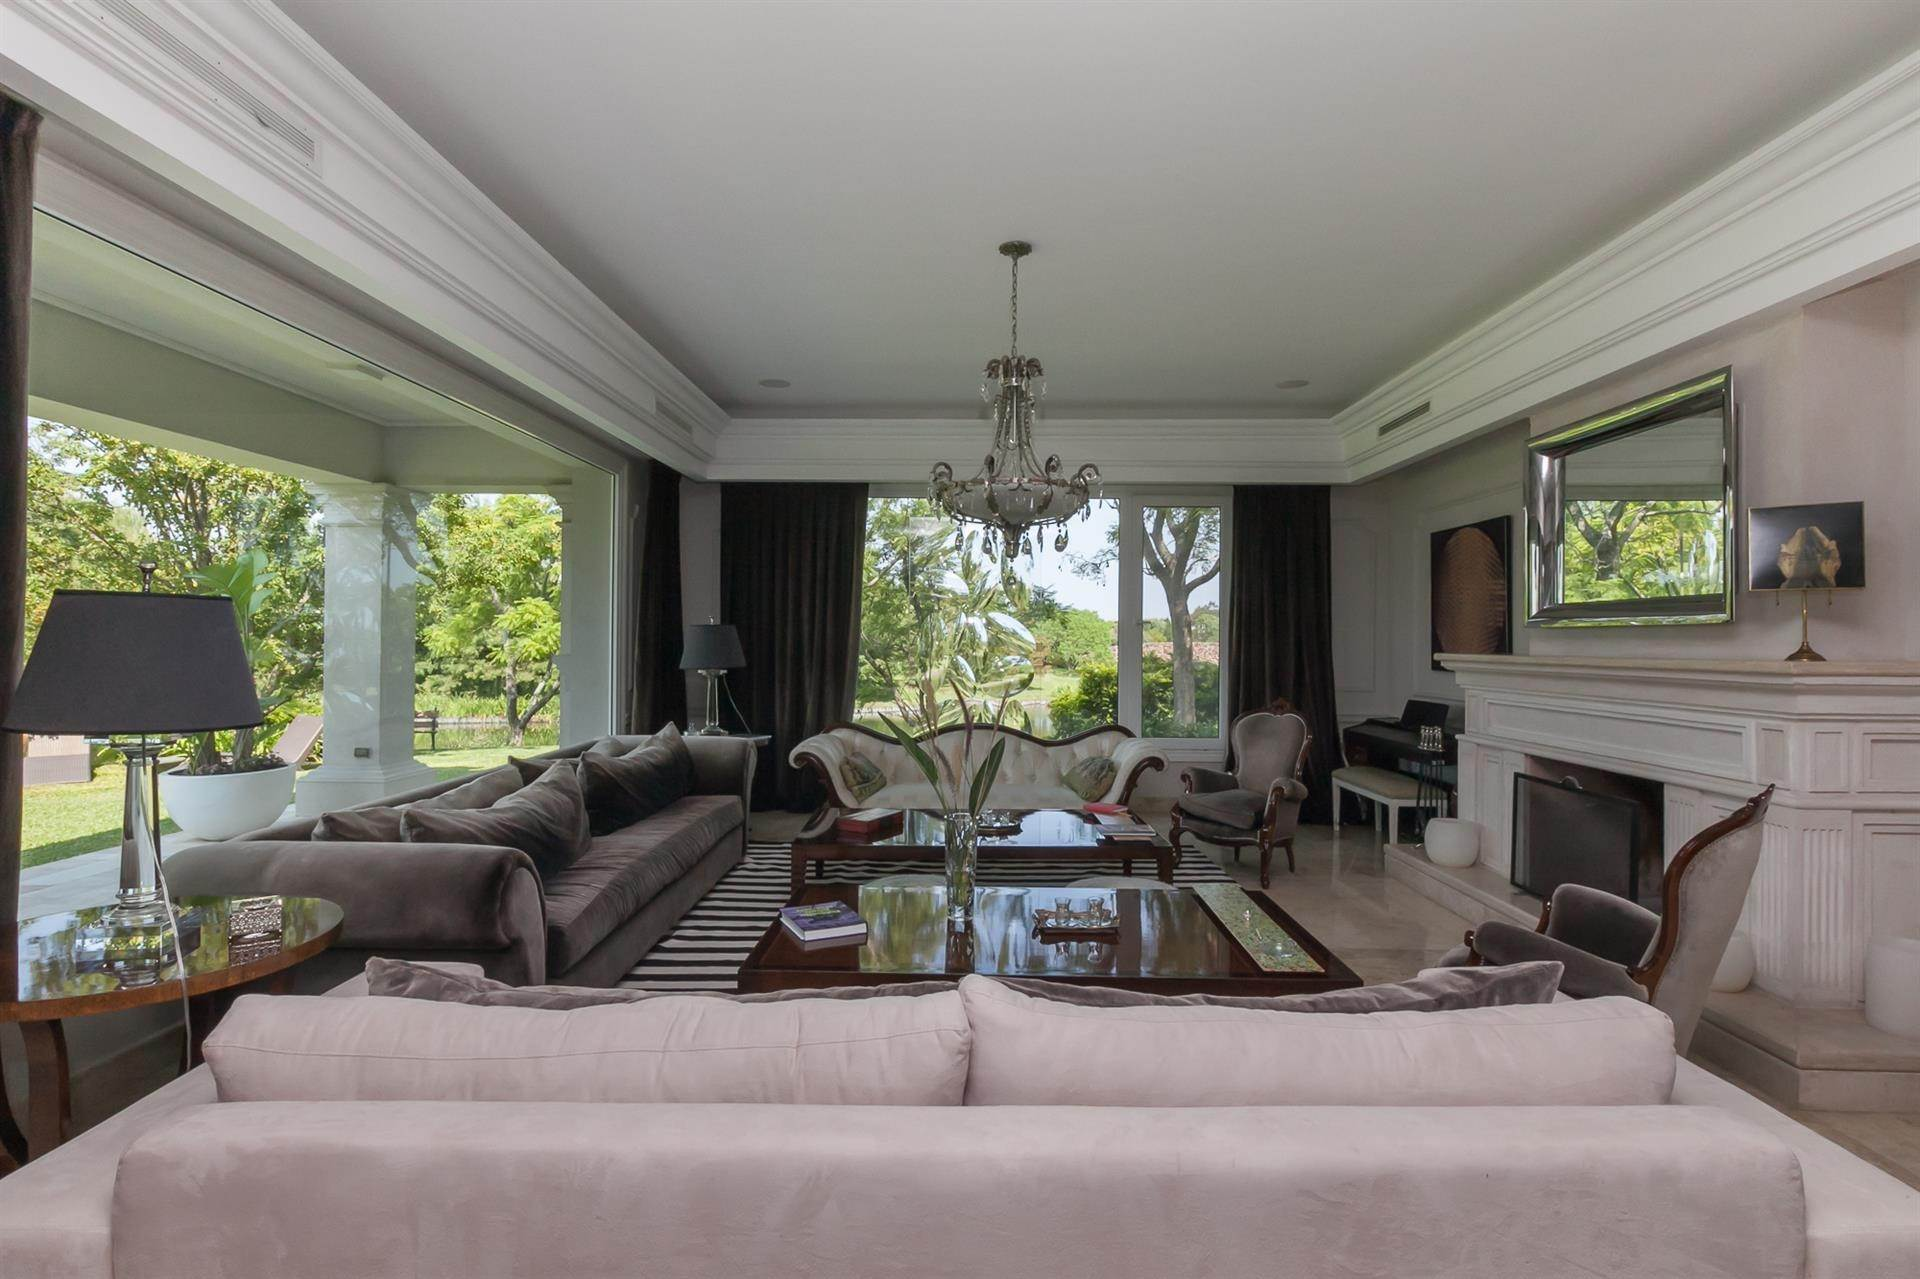 6. Single Family Home for Sale at Incredible house in La Isla, Nordelta Tigre, Argentina